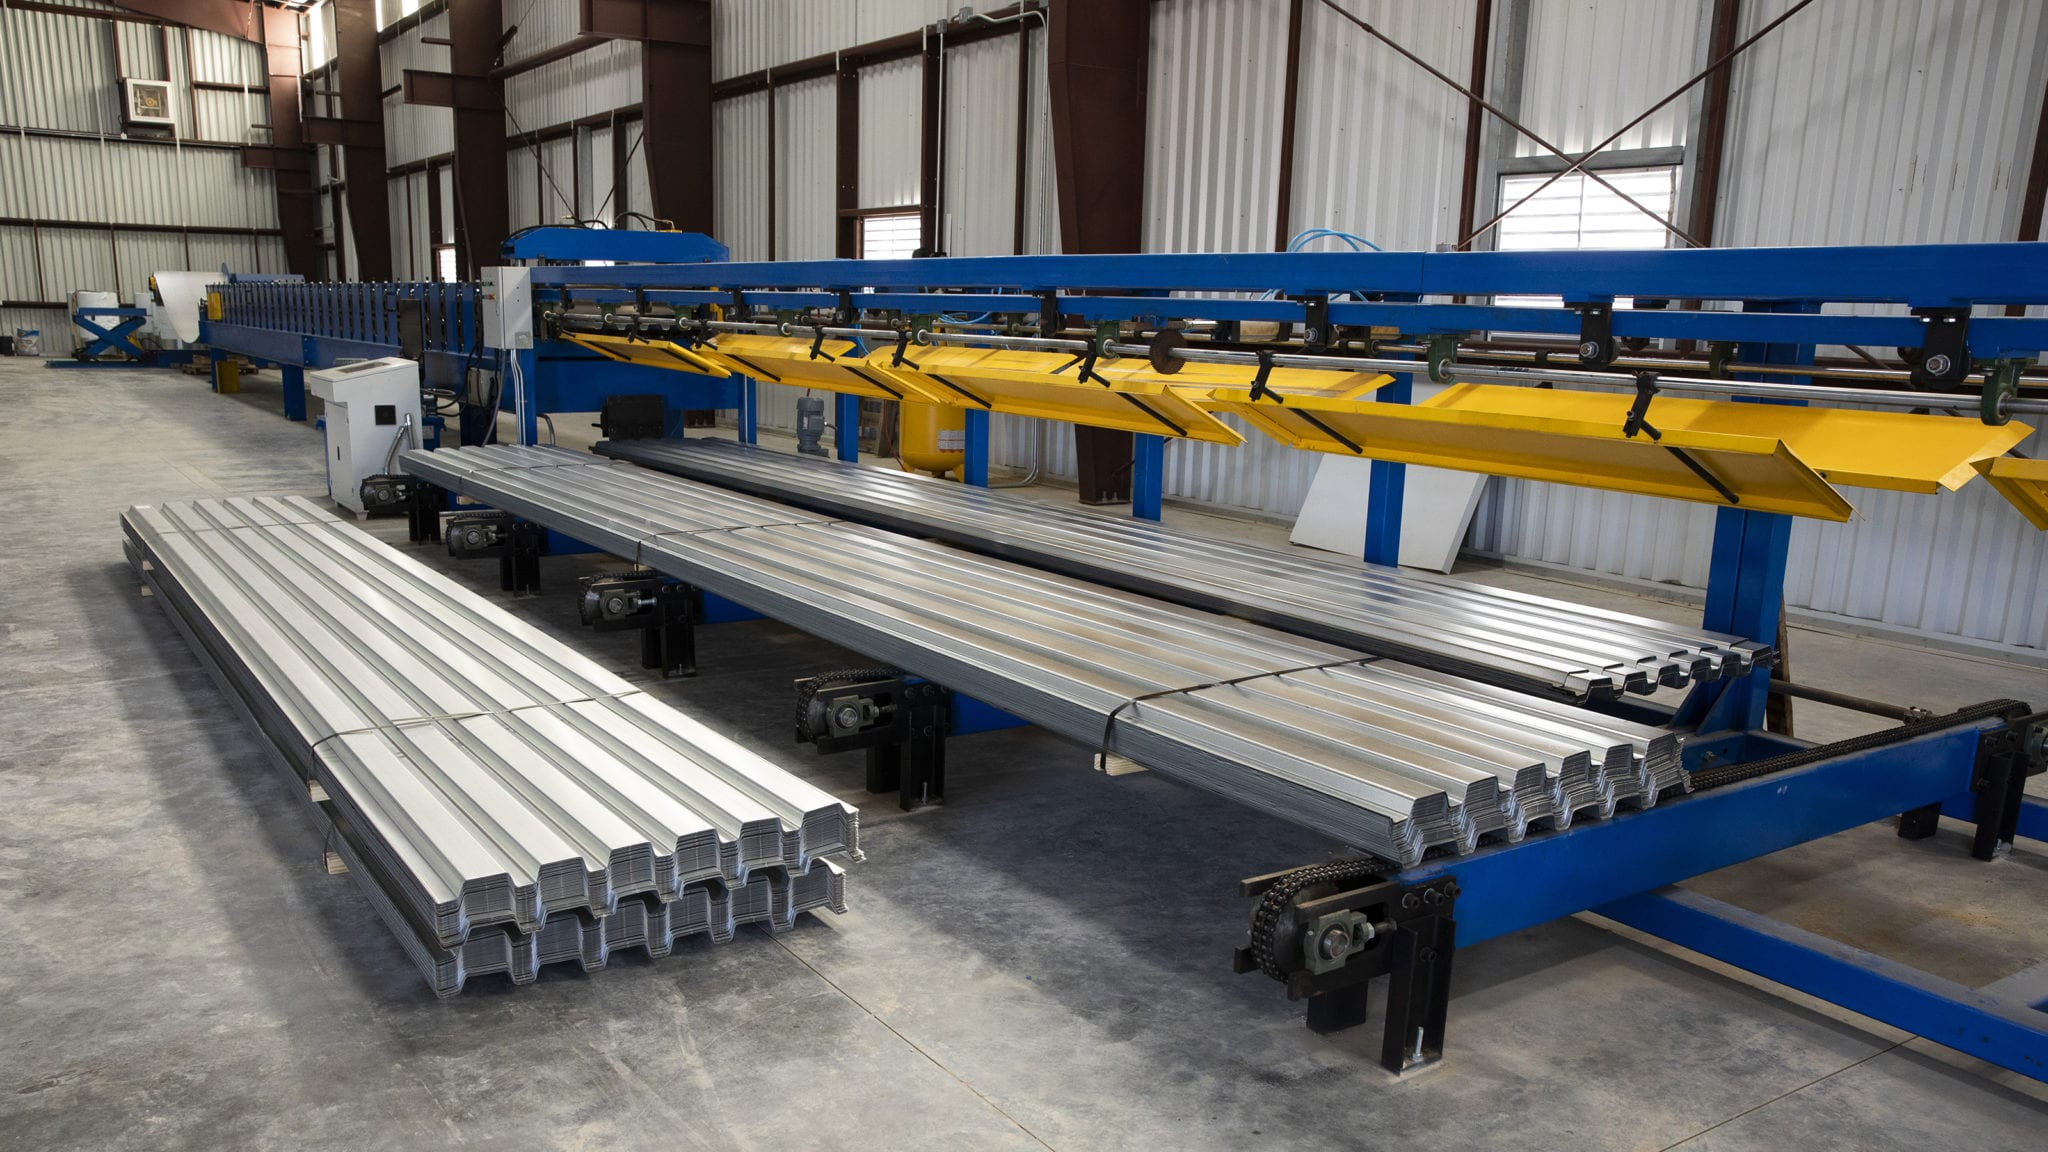 Our newly-installed roll forming line and 50-ft automatic stacker allow fast production from 2 ft. to 50 ft. lengths.